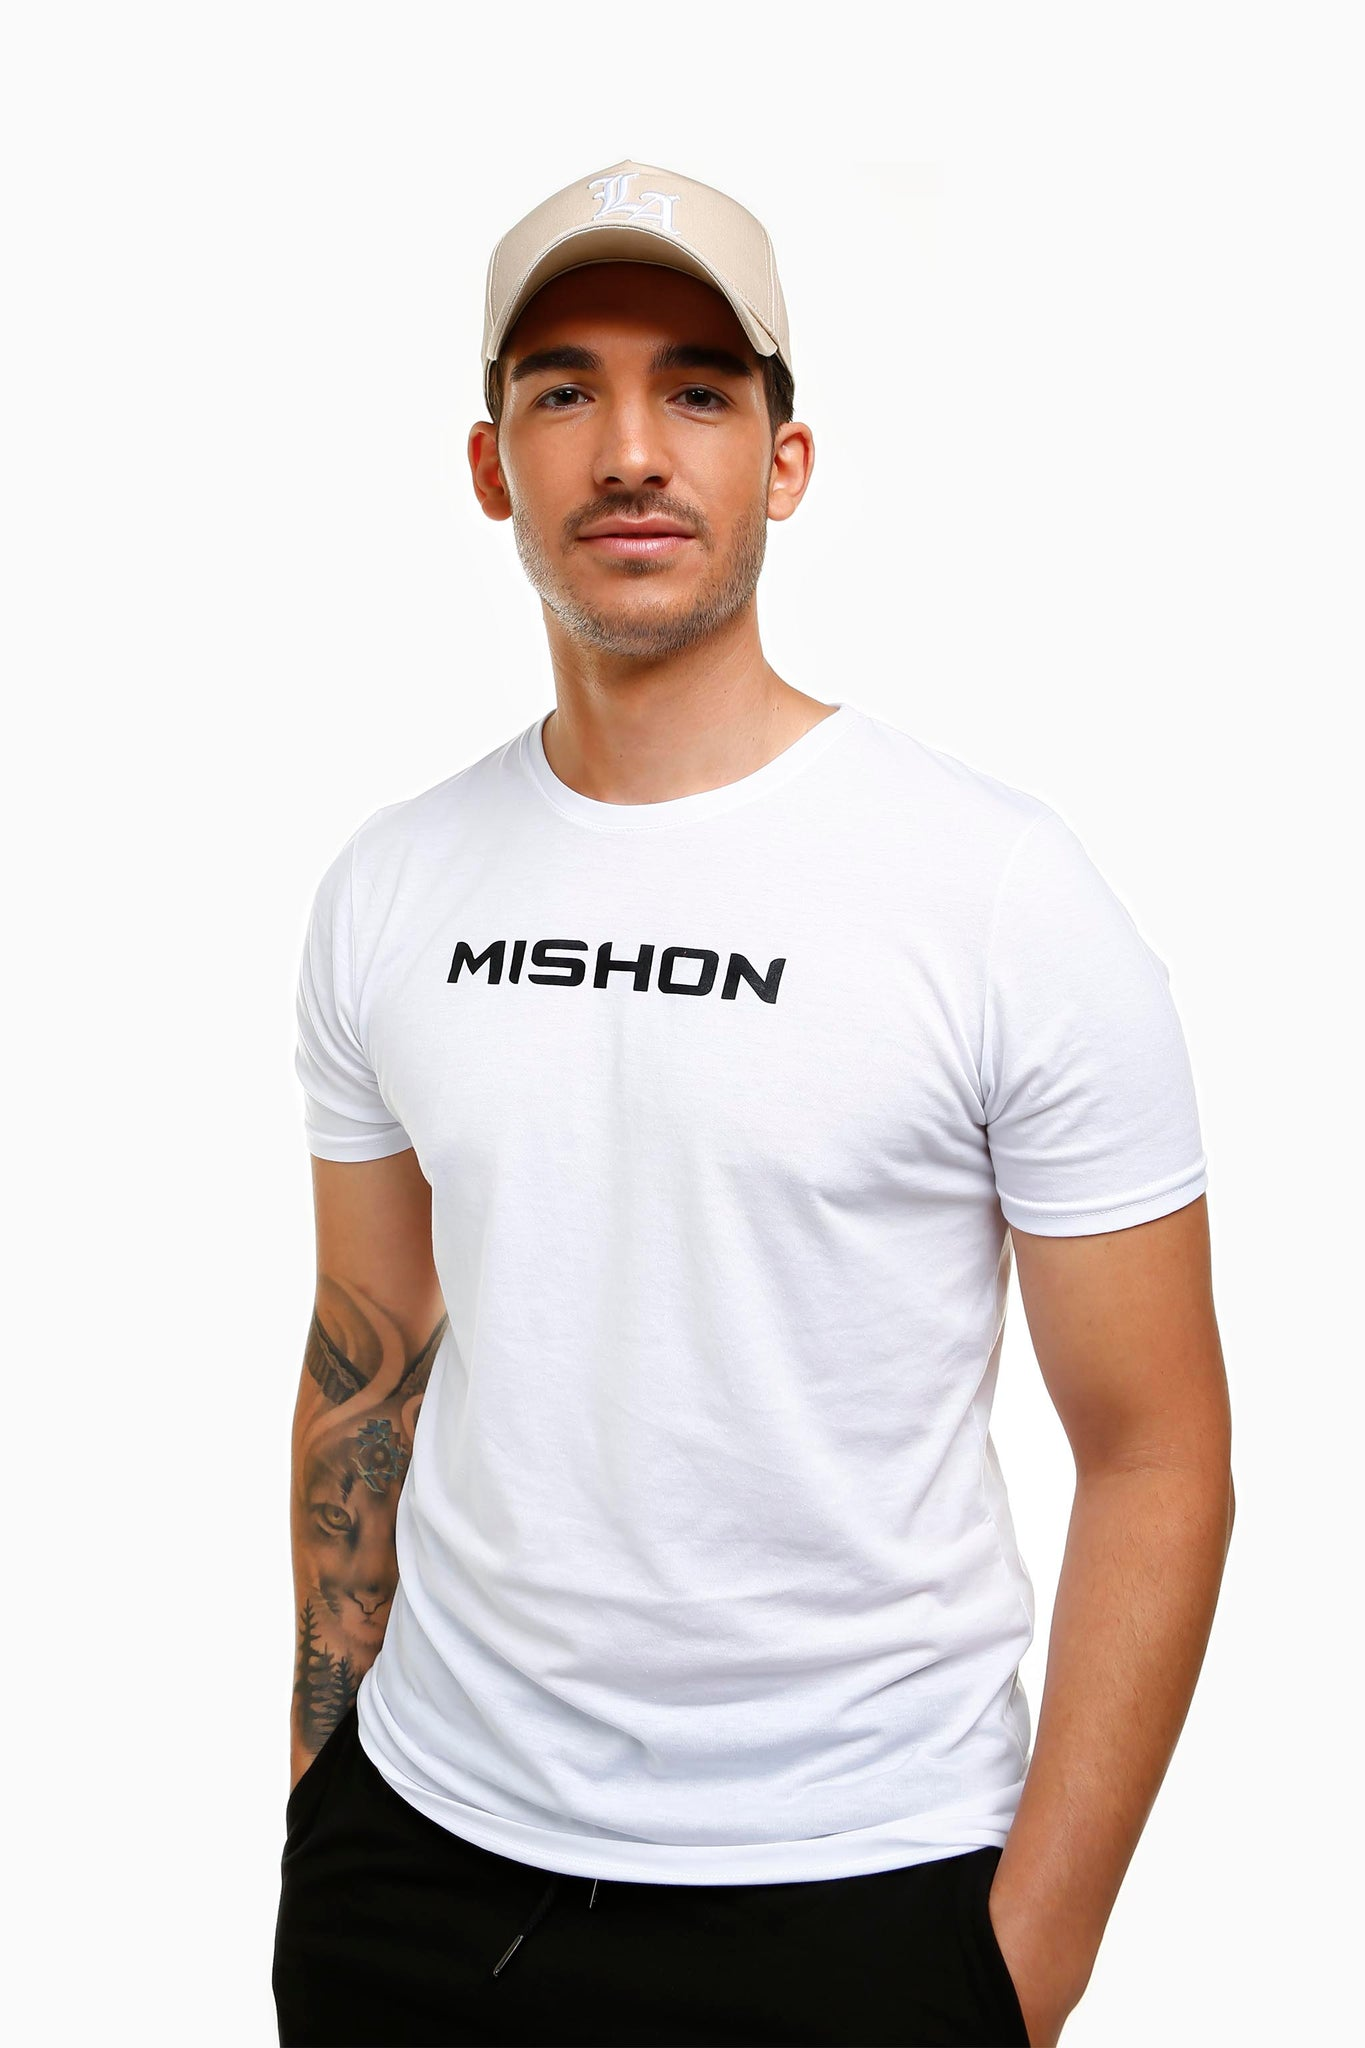 Mishon Black on White Tee